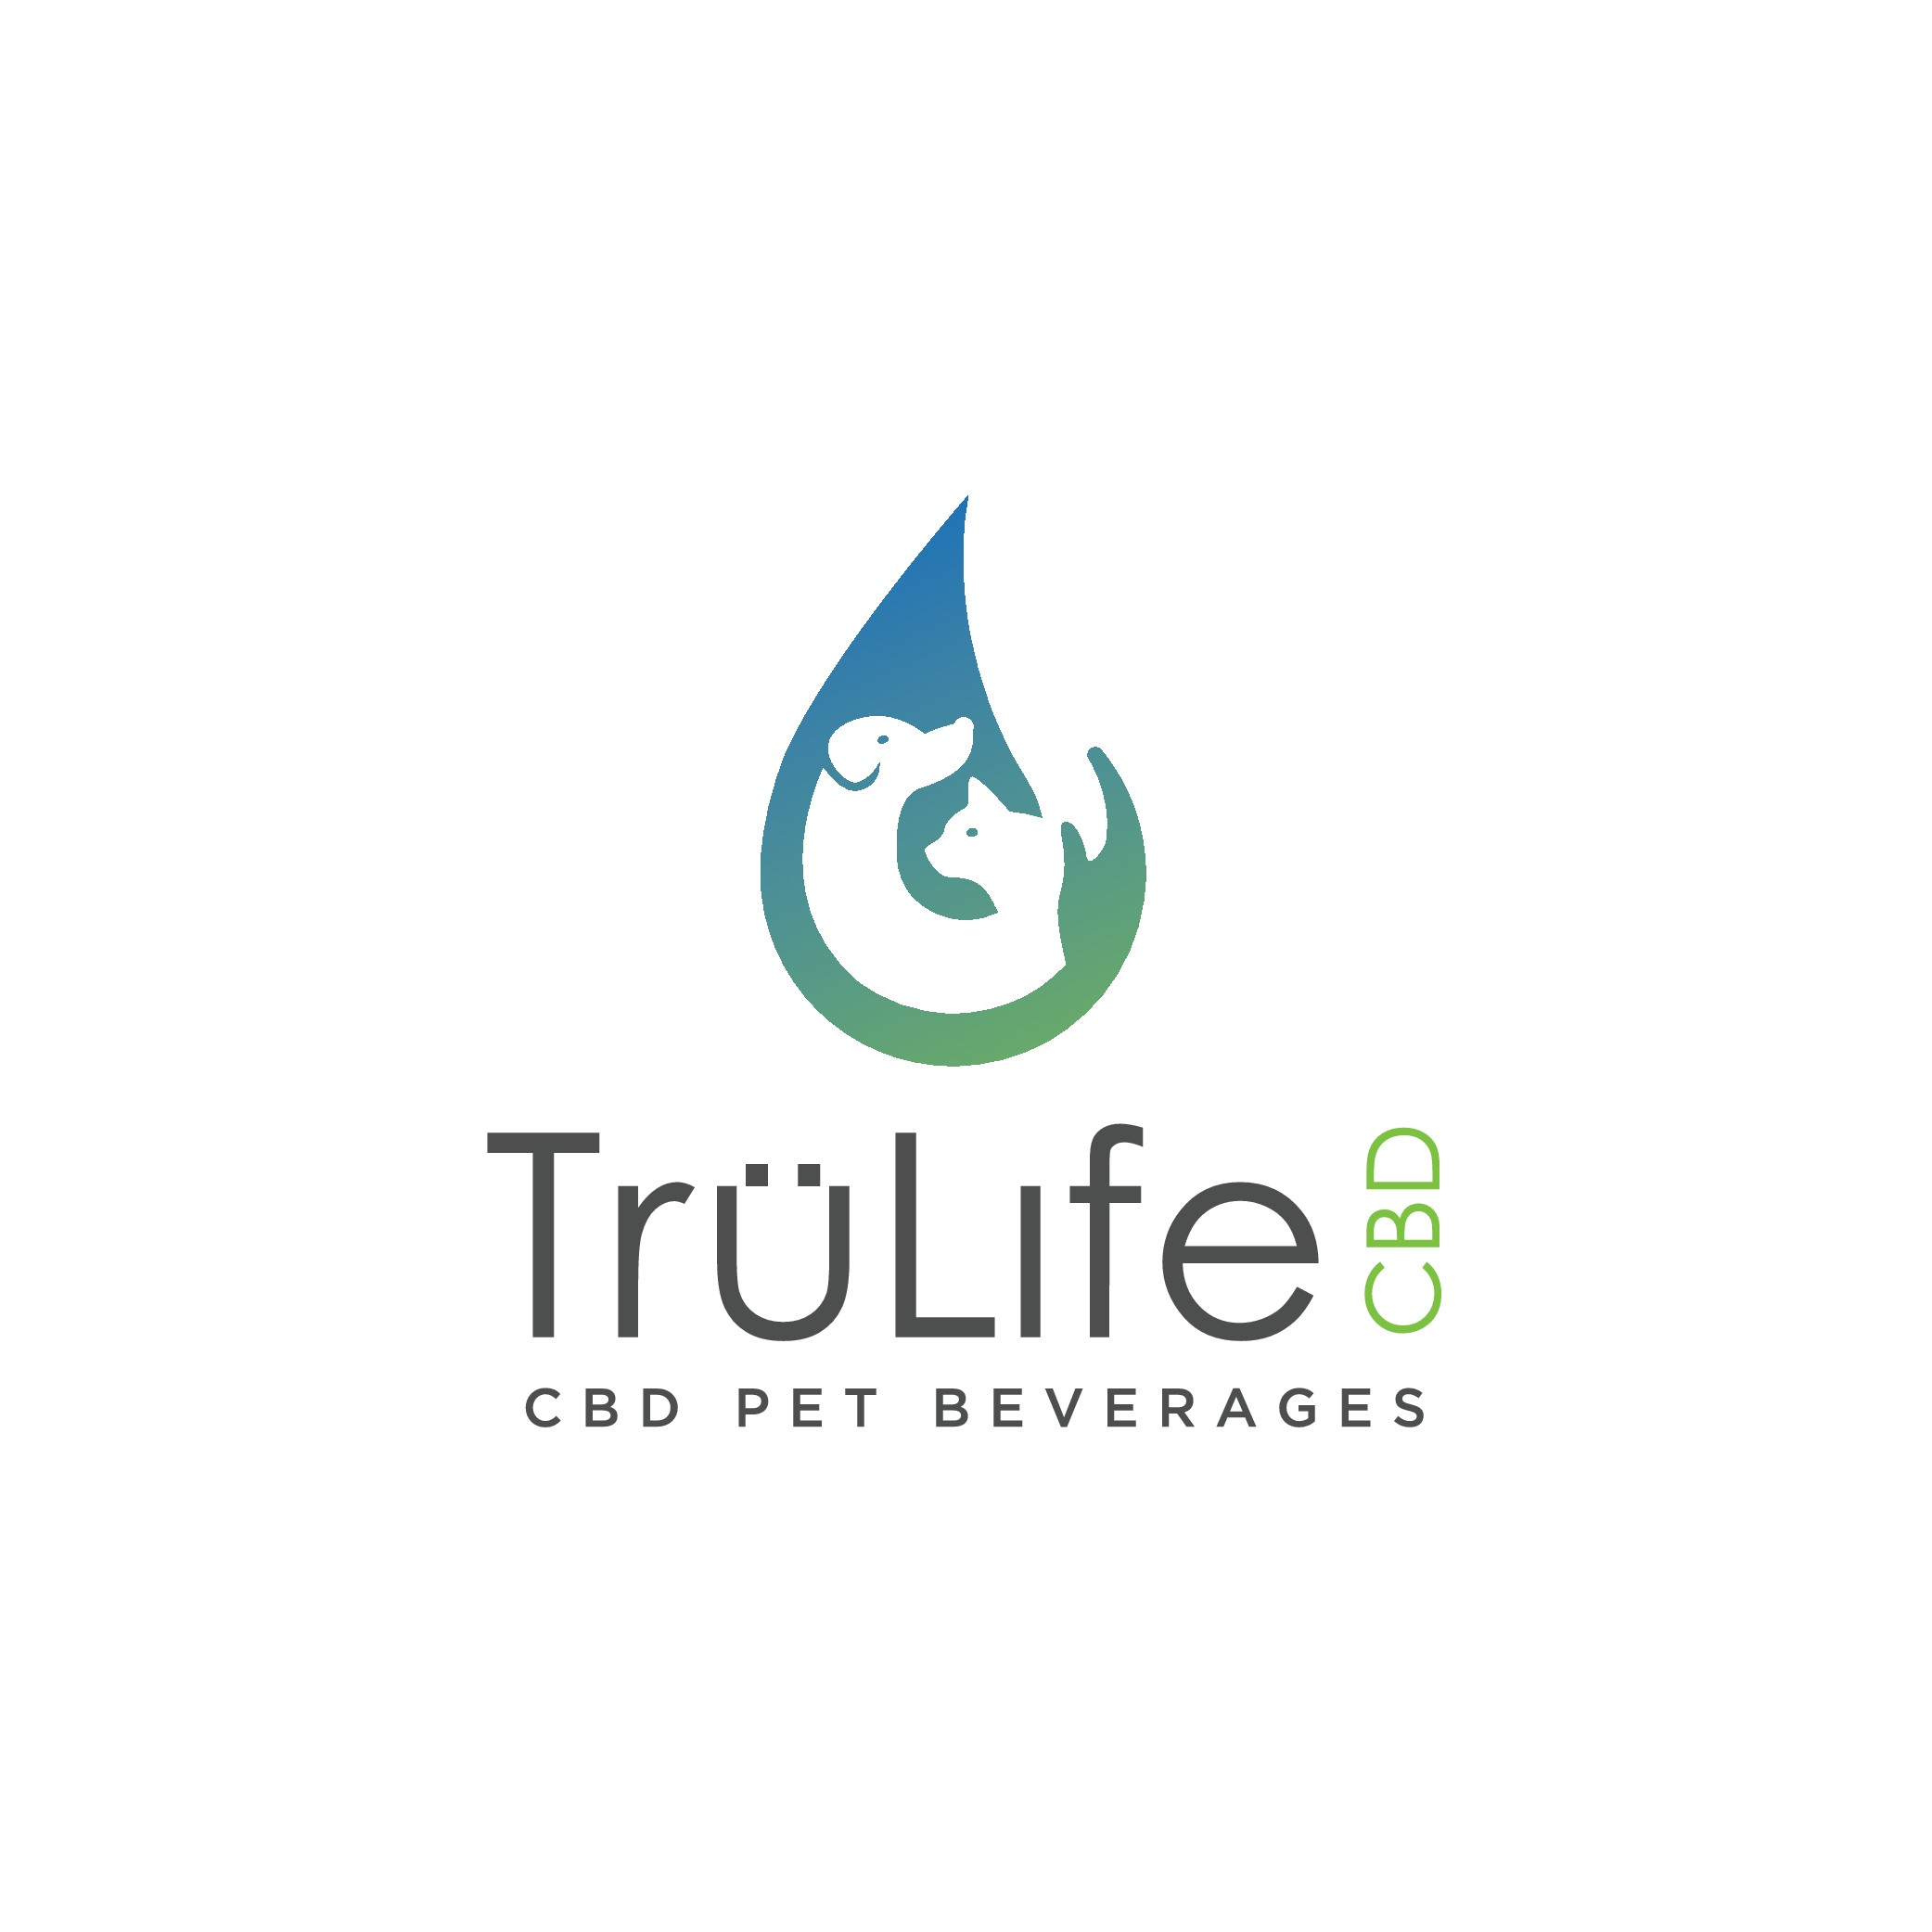 Logo for Line of Pet CBD Products